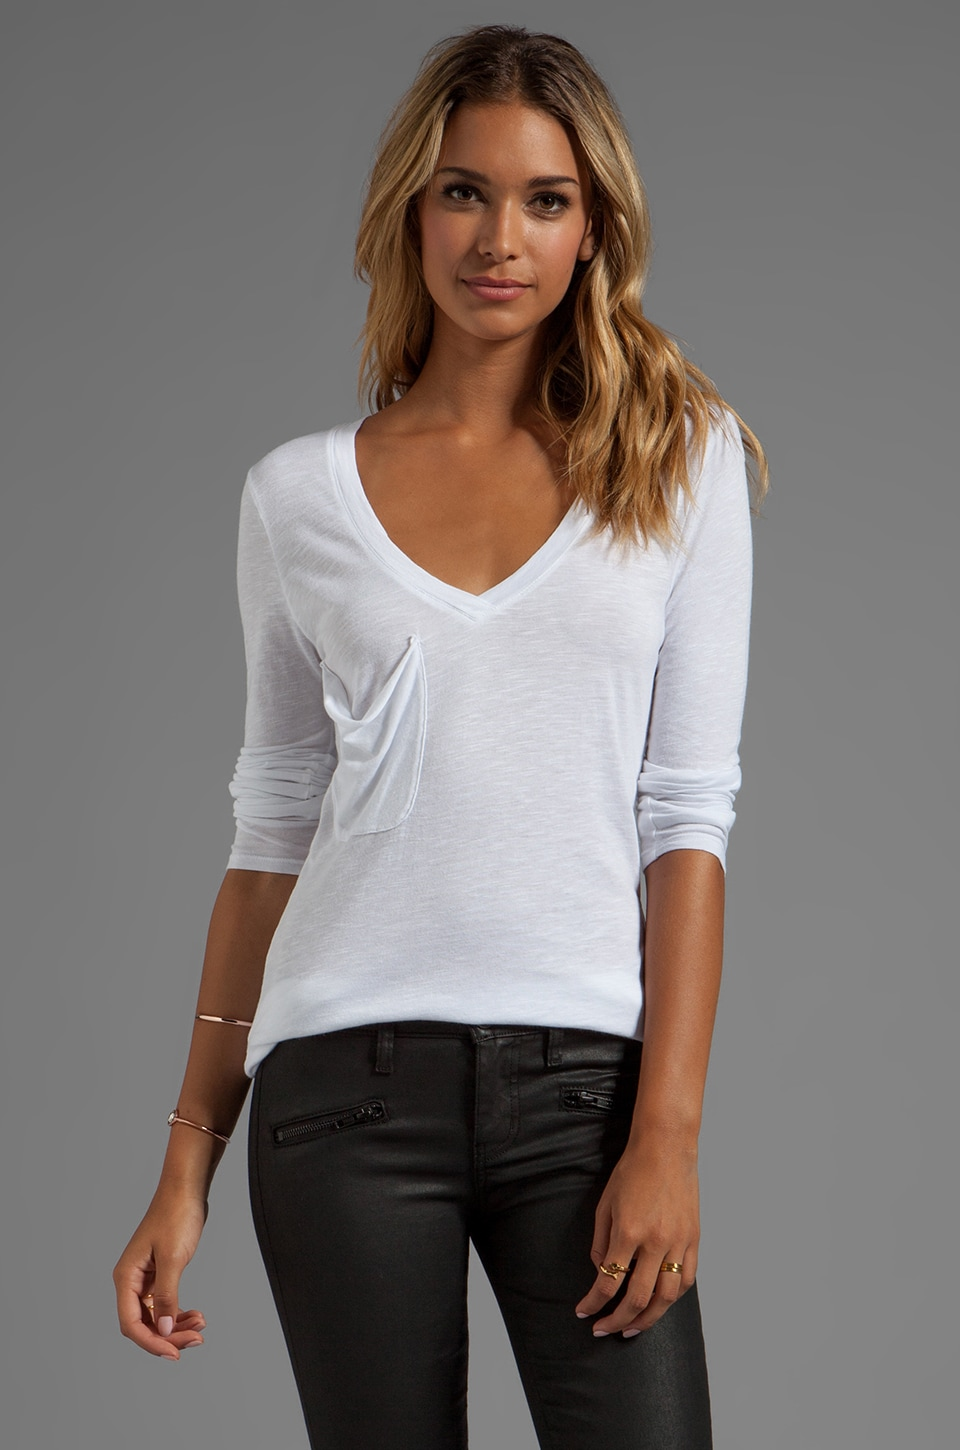 Bobi Slub Long Sleeve Pocket Tee in White